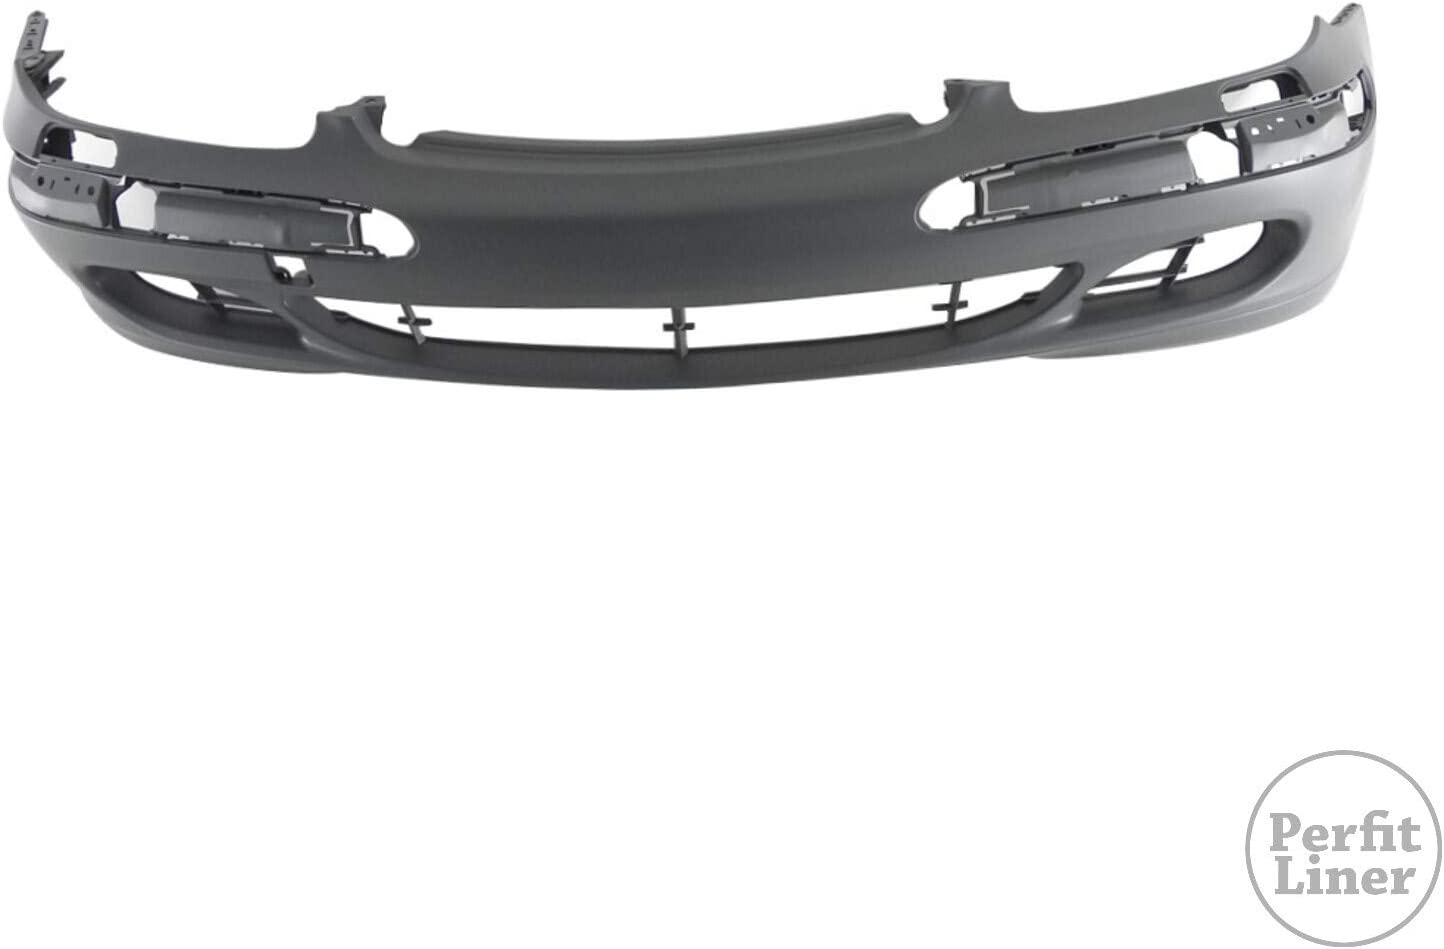 Perfit Liner Front Gray Primed Bumper Cover Compatible With MERCEDES Benz W220 S Class S350 S430 S500 S600 W//O Sport Package W//O Head Lamp Washer Hole Fits MB1000196 2208800640